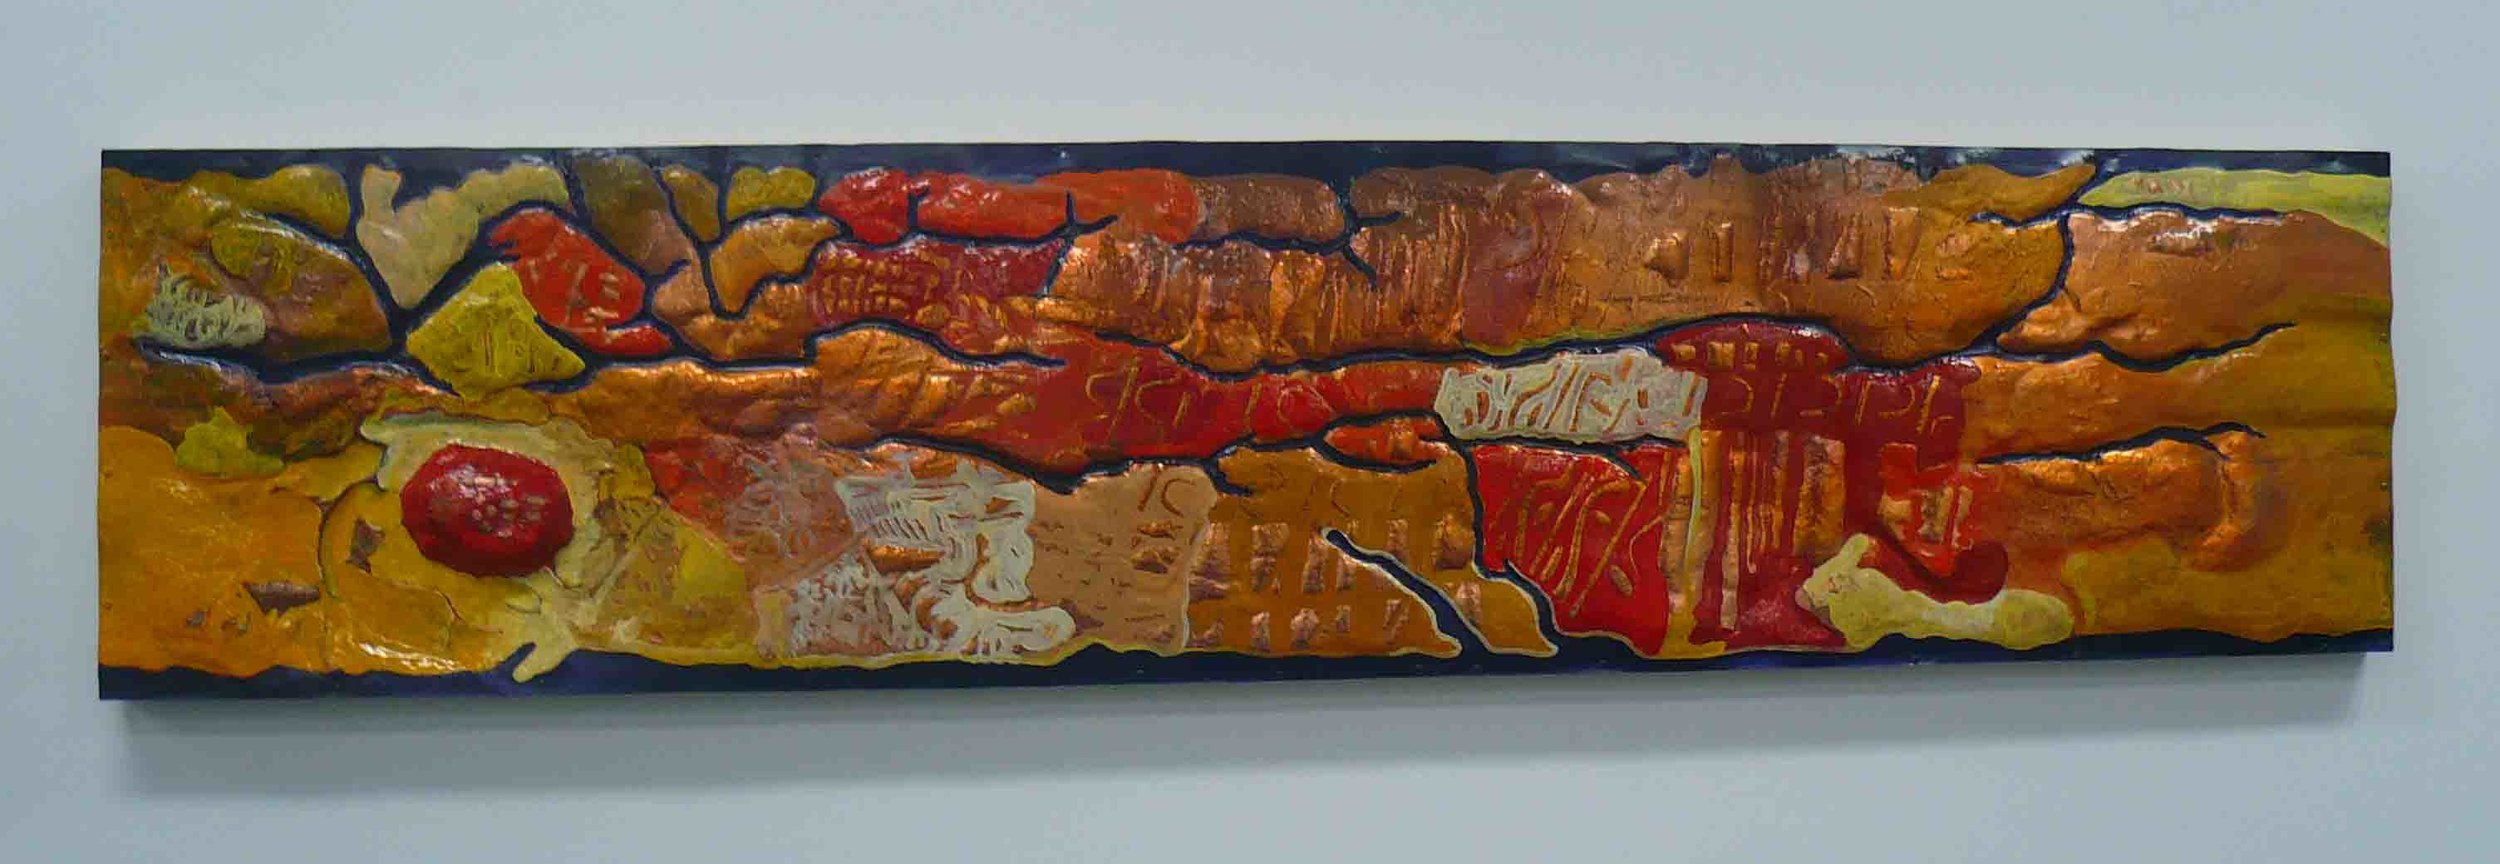 'Leichhardt's Map Alice Springs' 2010 2m by 0.6m, copper & oil paint